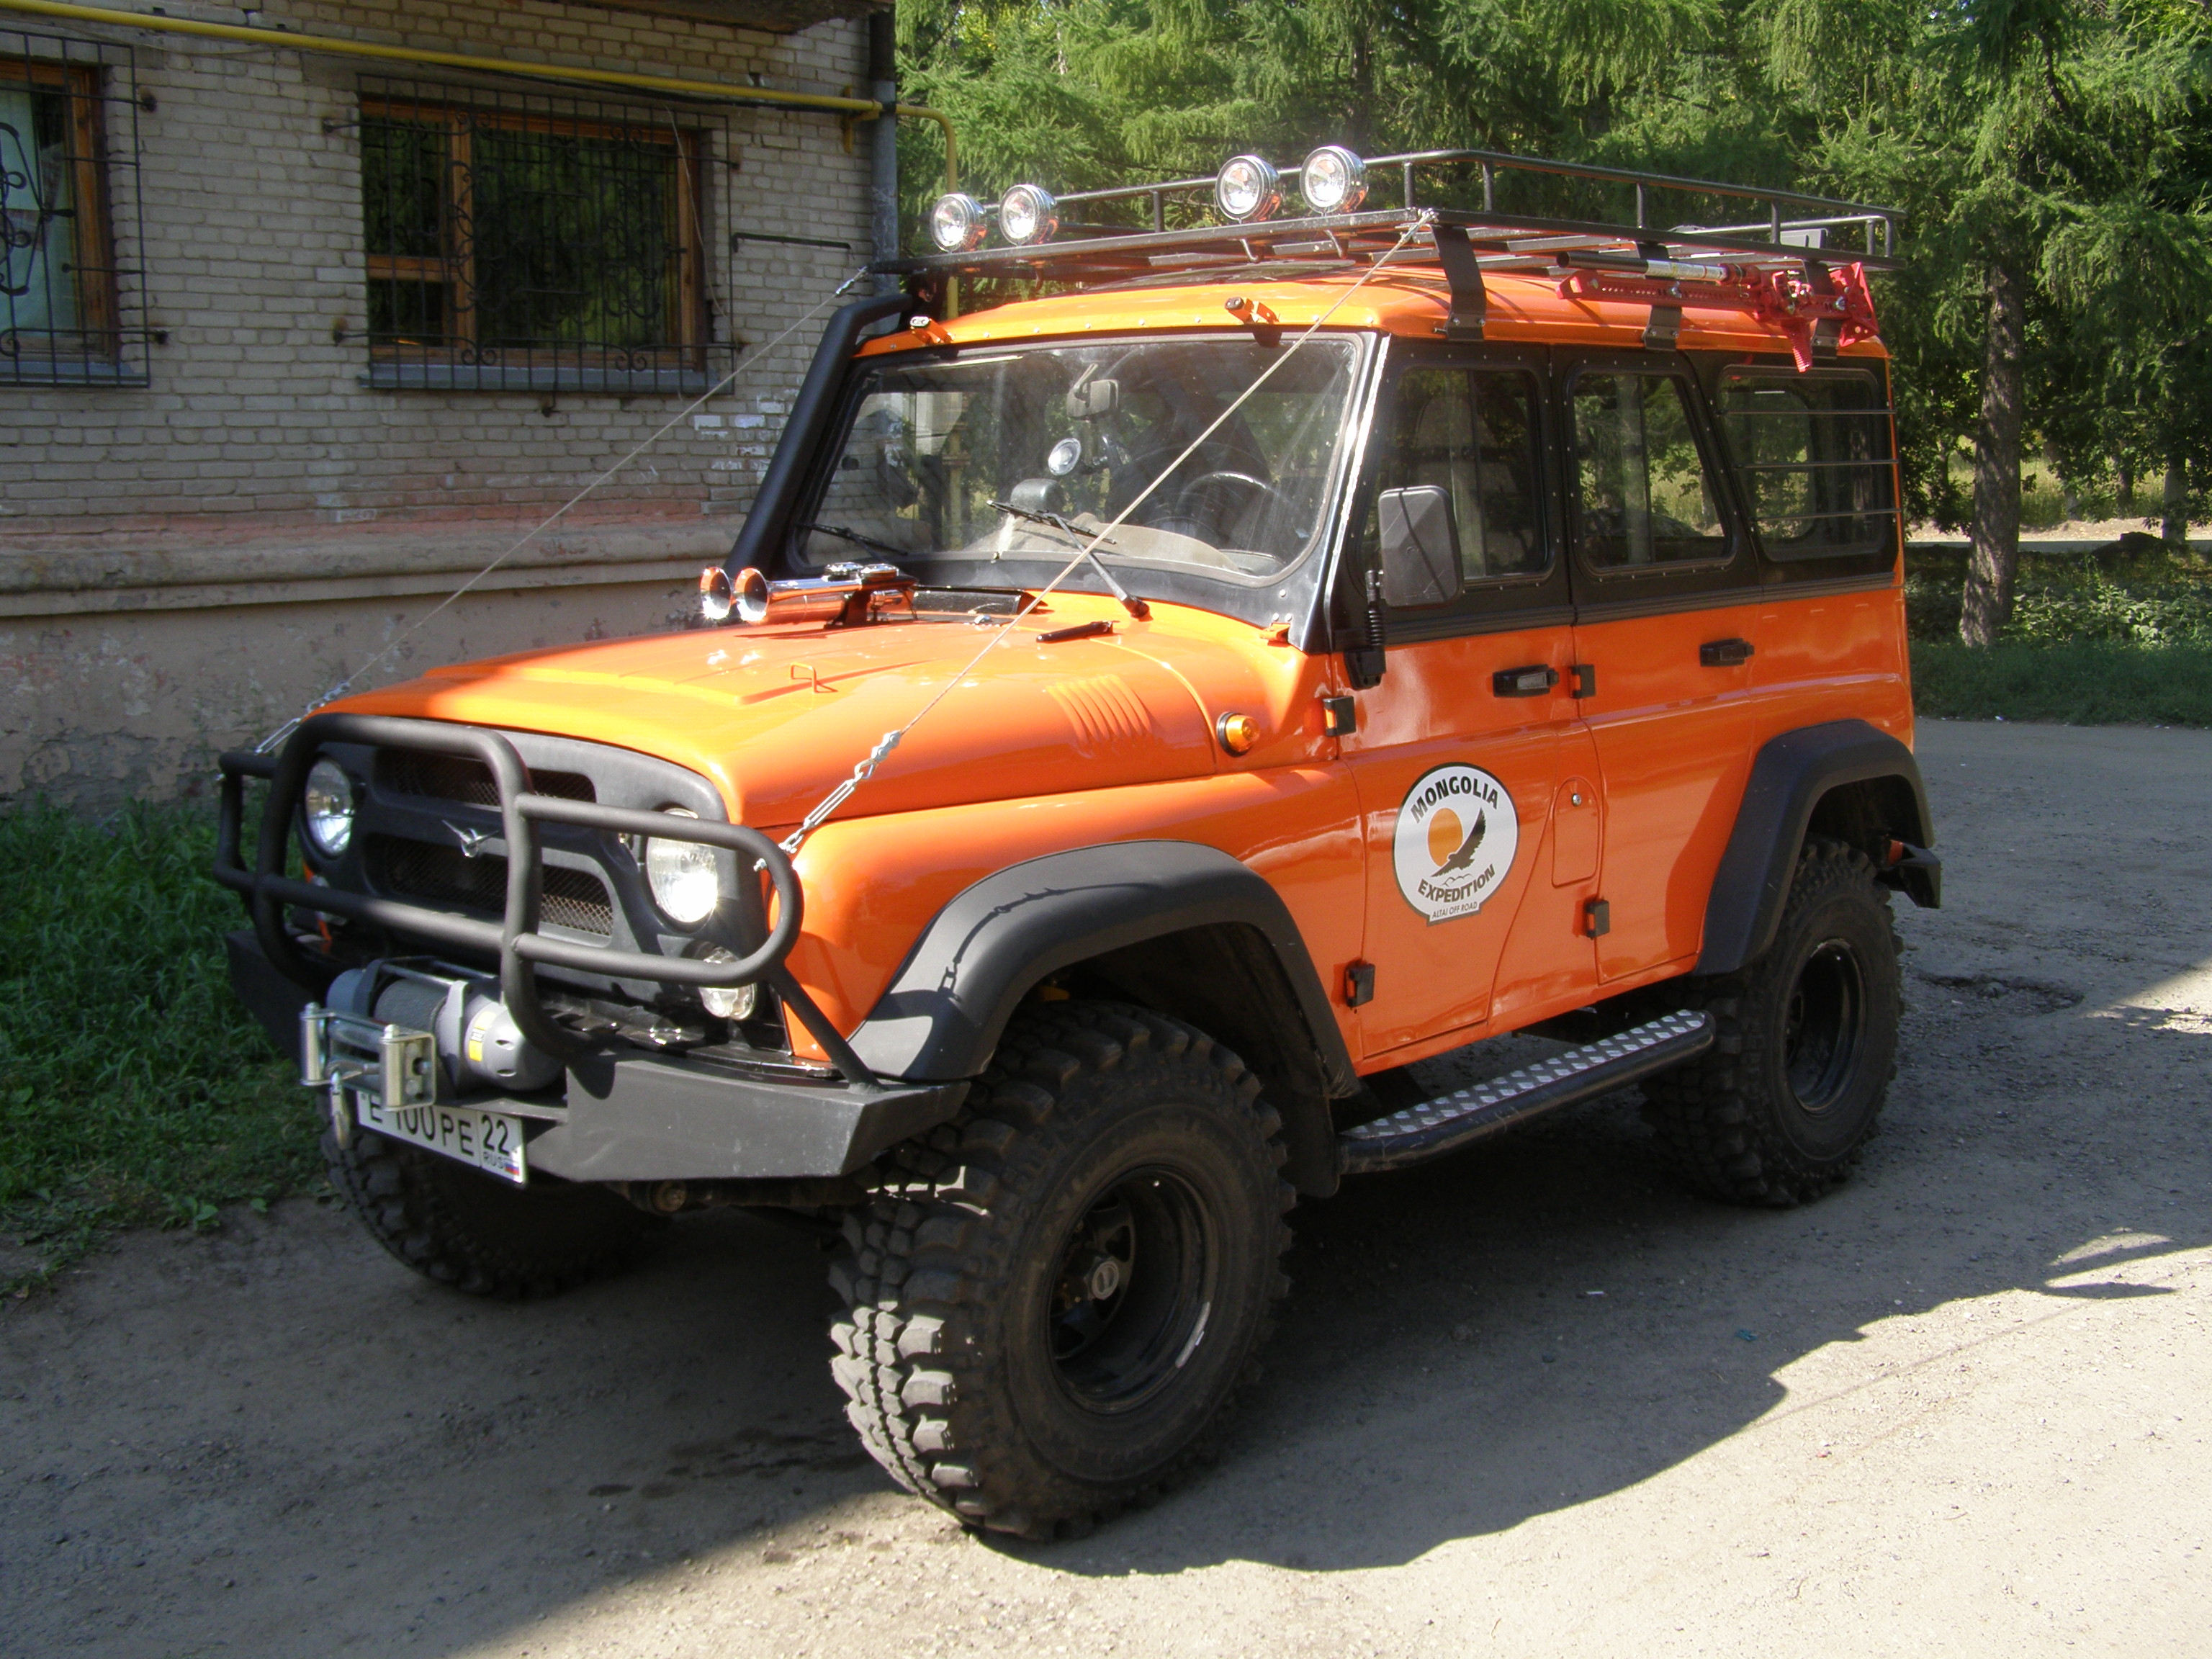 UAZ_Hunter_used_during_an_expedition_to_Mongolia.jpg